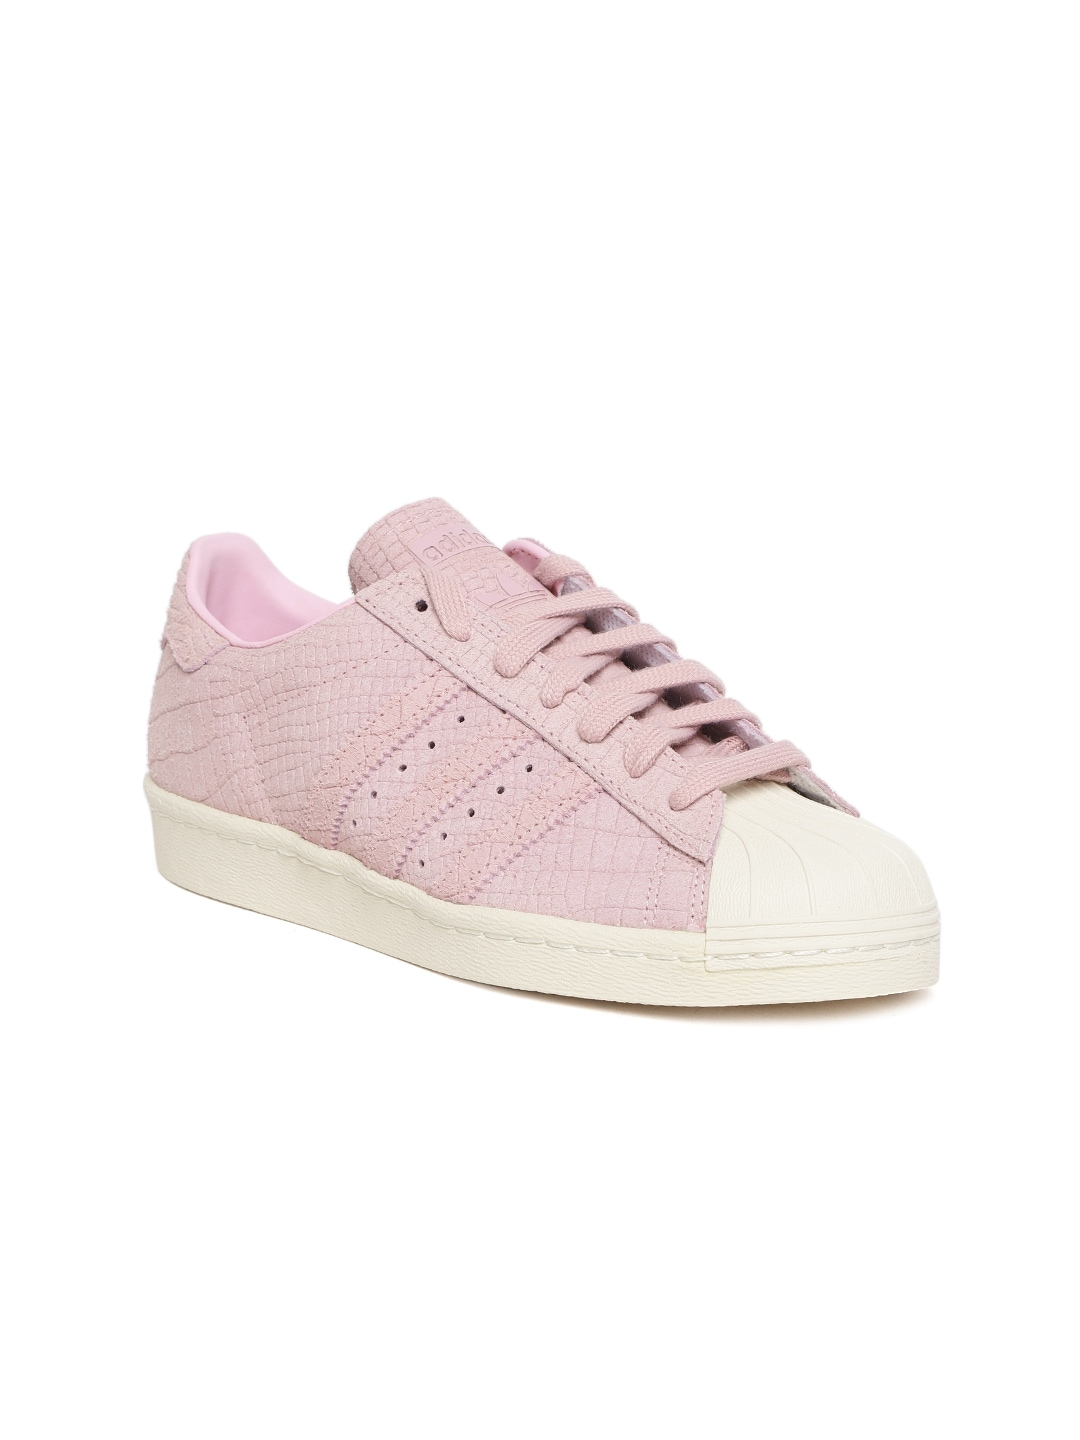 wholesale dealer c4d35 e6574 Adidas Originals Superstar Shoes - Buy Adidas Originals Superstar Shoes  online in India